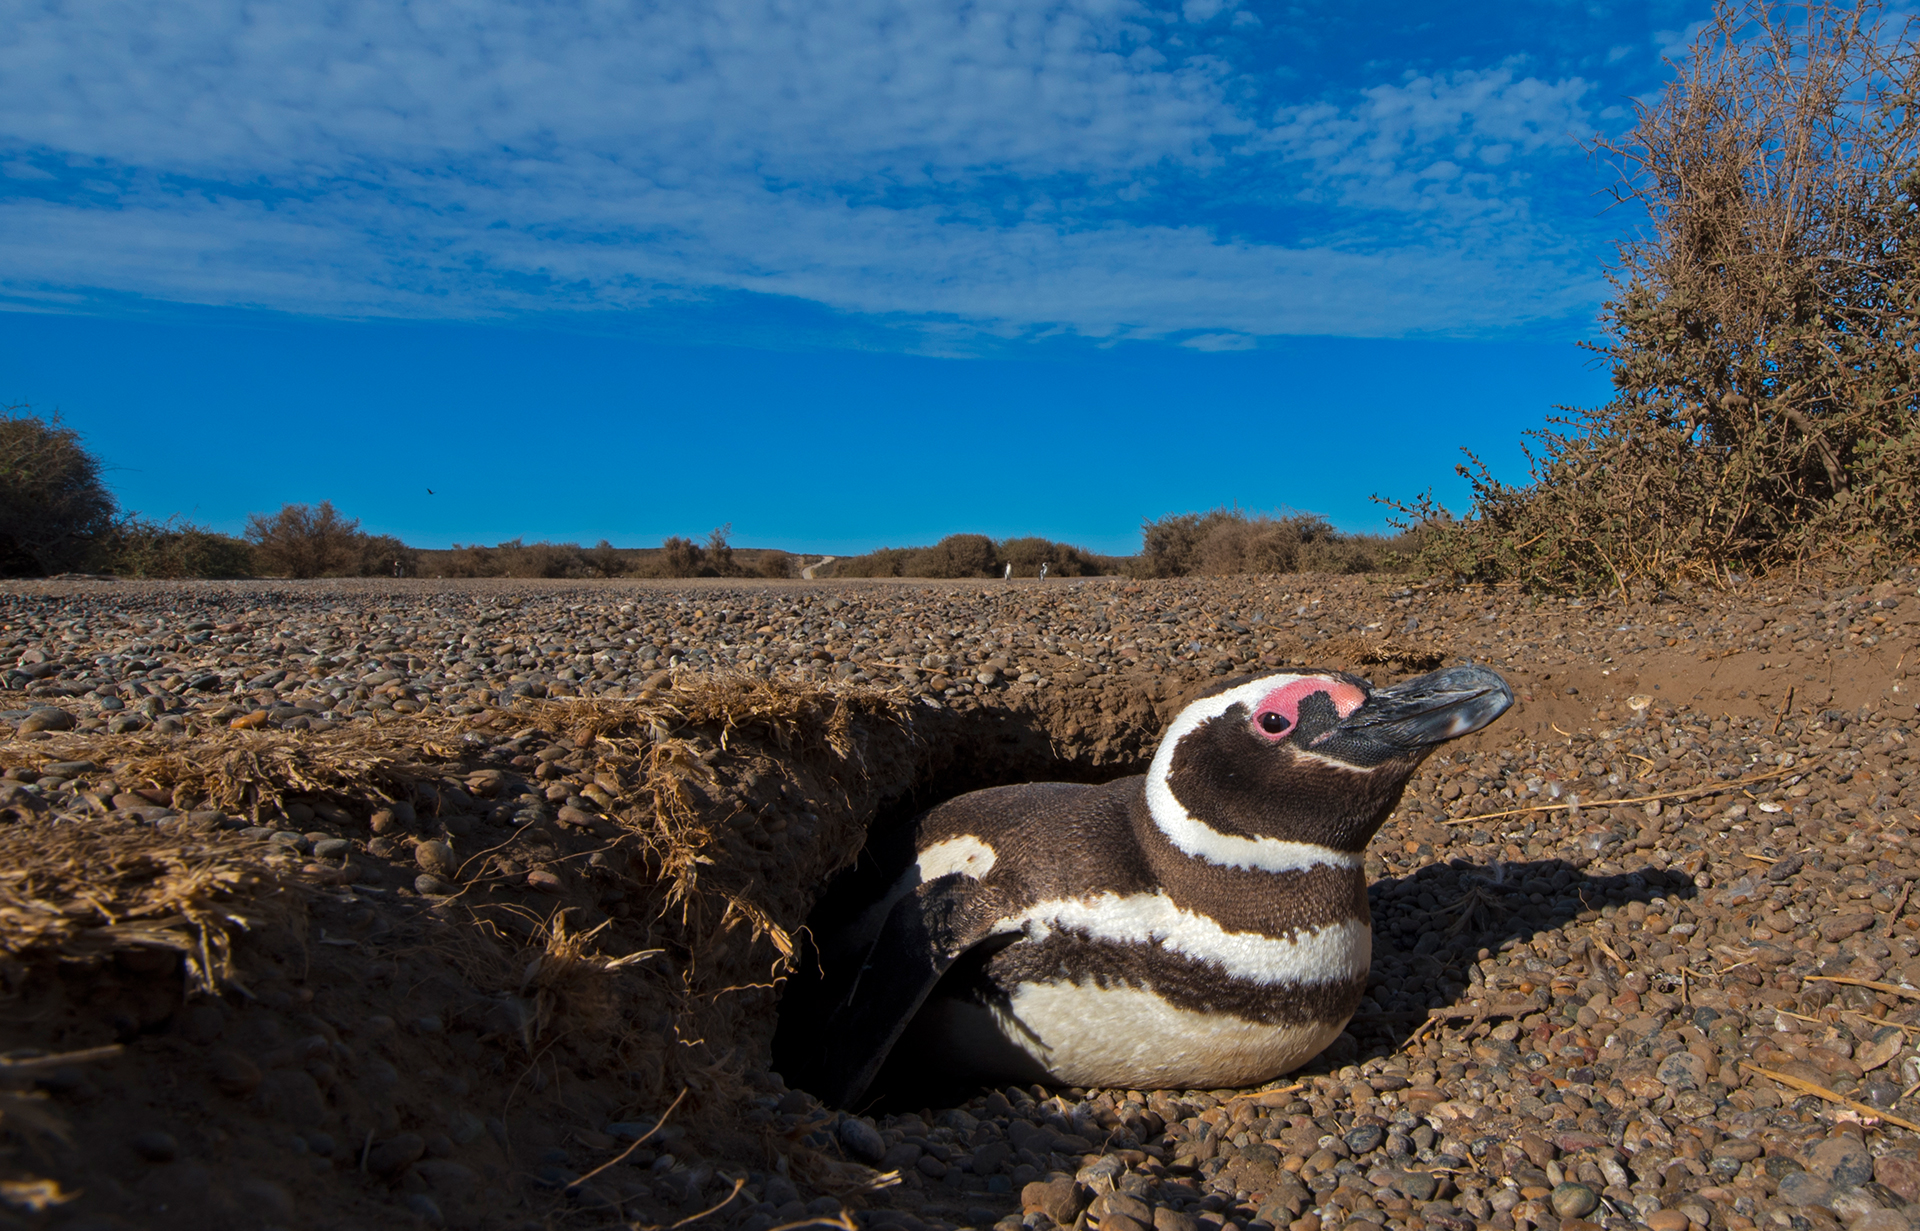 Magellanic penguins in the Valdes Peninsula nest in hidden burrows in the soil. They sometimes dig up to one metre in depth and end in a round chamber. Two eggs are laid, and the parents take turns incubating them, while the other forages in the ocean. Once hatched, chicks are brooded for 3-4 weeks, during which time the parents leave them in the burrows, only coming back to feed them every two or three days.